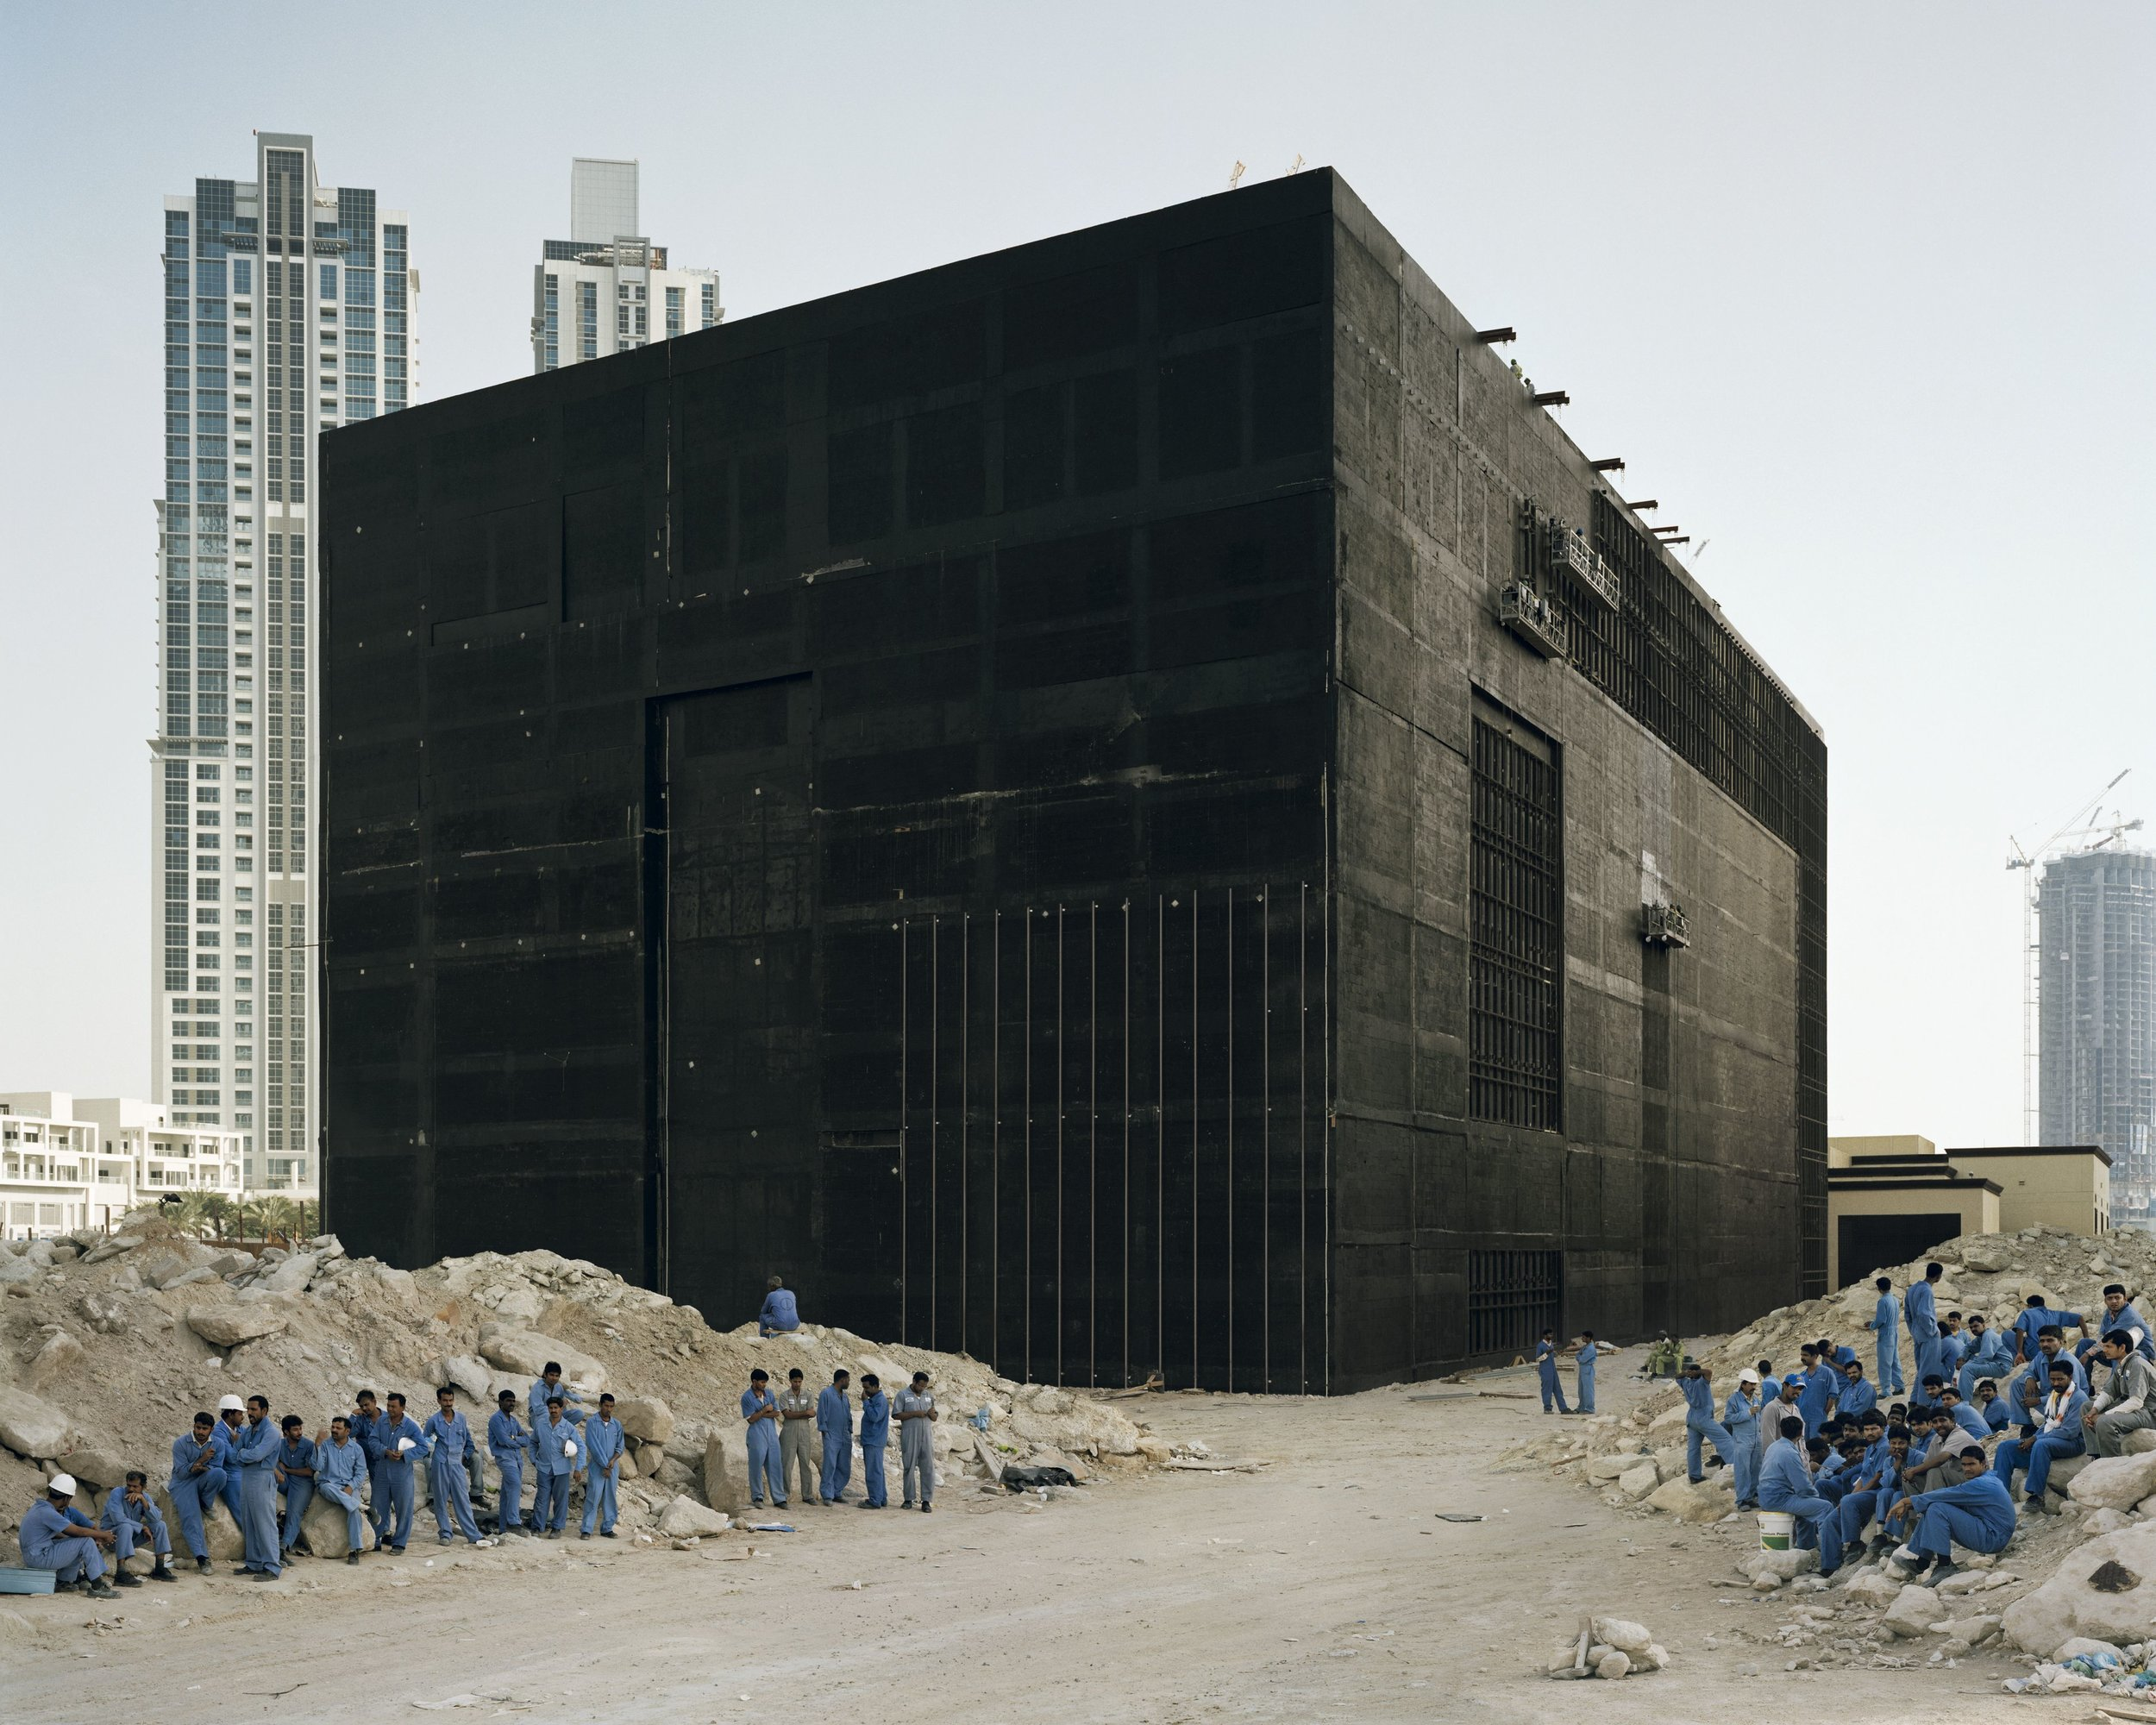 Cooling Plant, 2009, Bas Princen. On view at the MAAT exhibition. Courtesy of the artist.